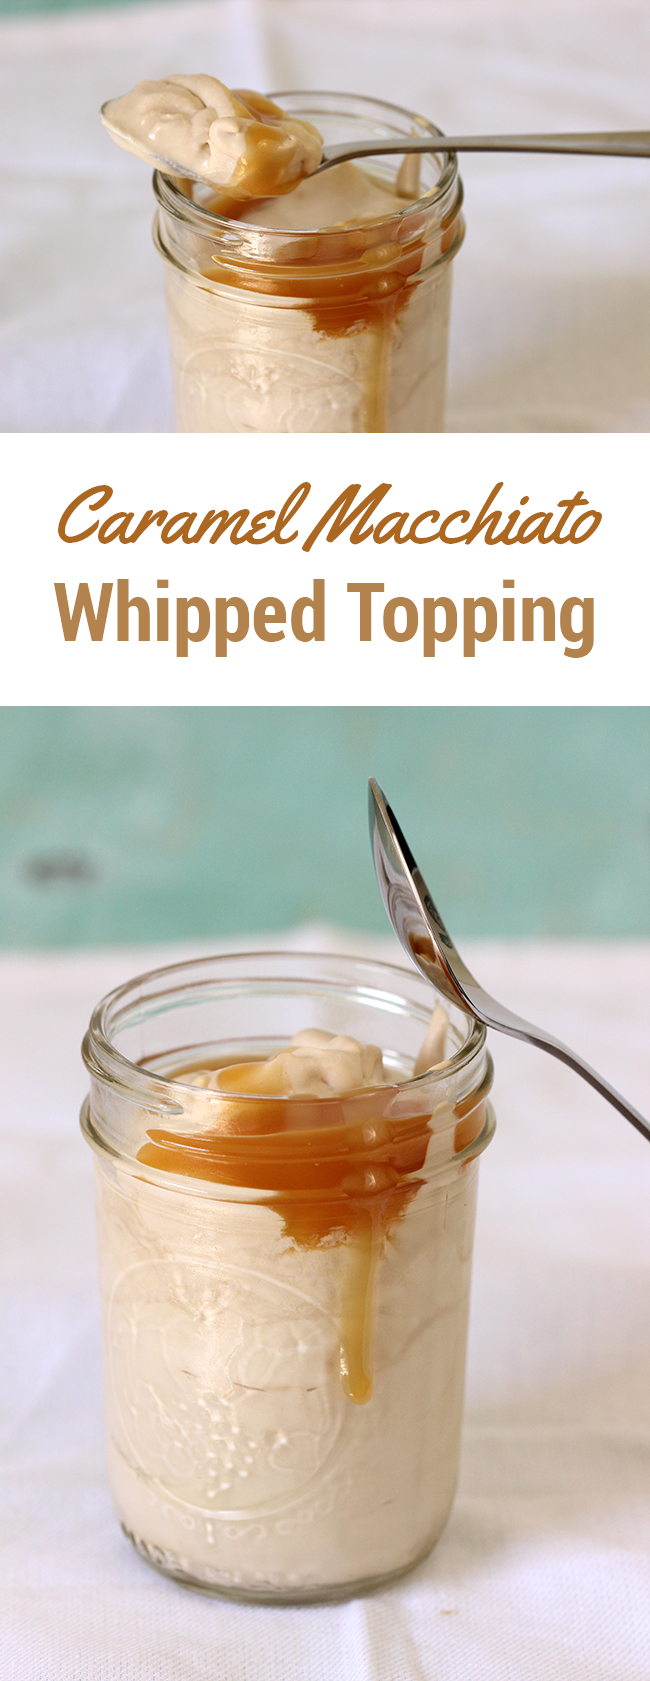 Whoa! Drool alert! Make Caramel Macchiato Whipped Topping with just a few simple ingredients. MUST put this on my coffee!